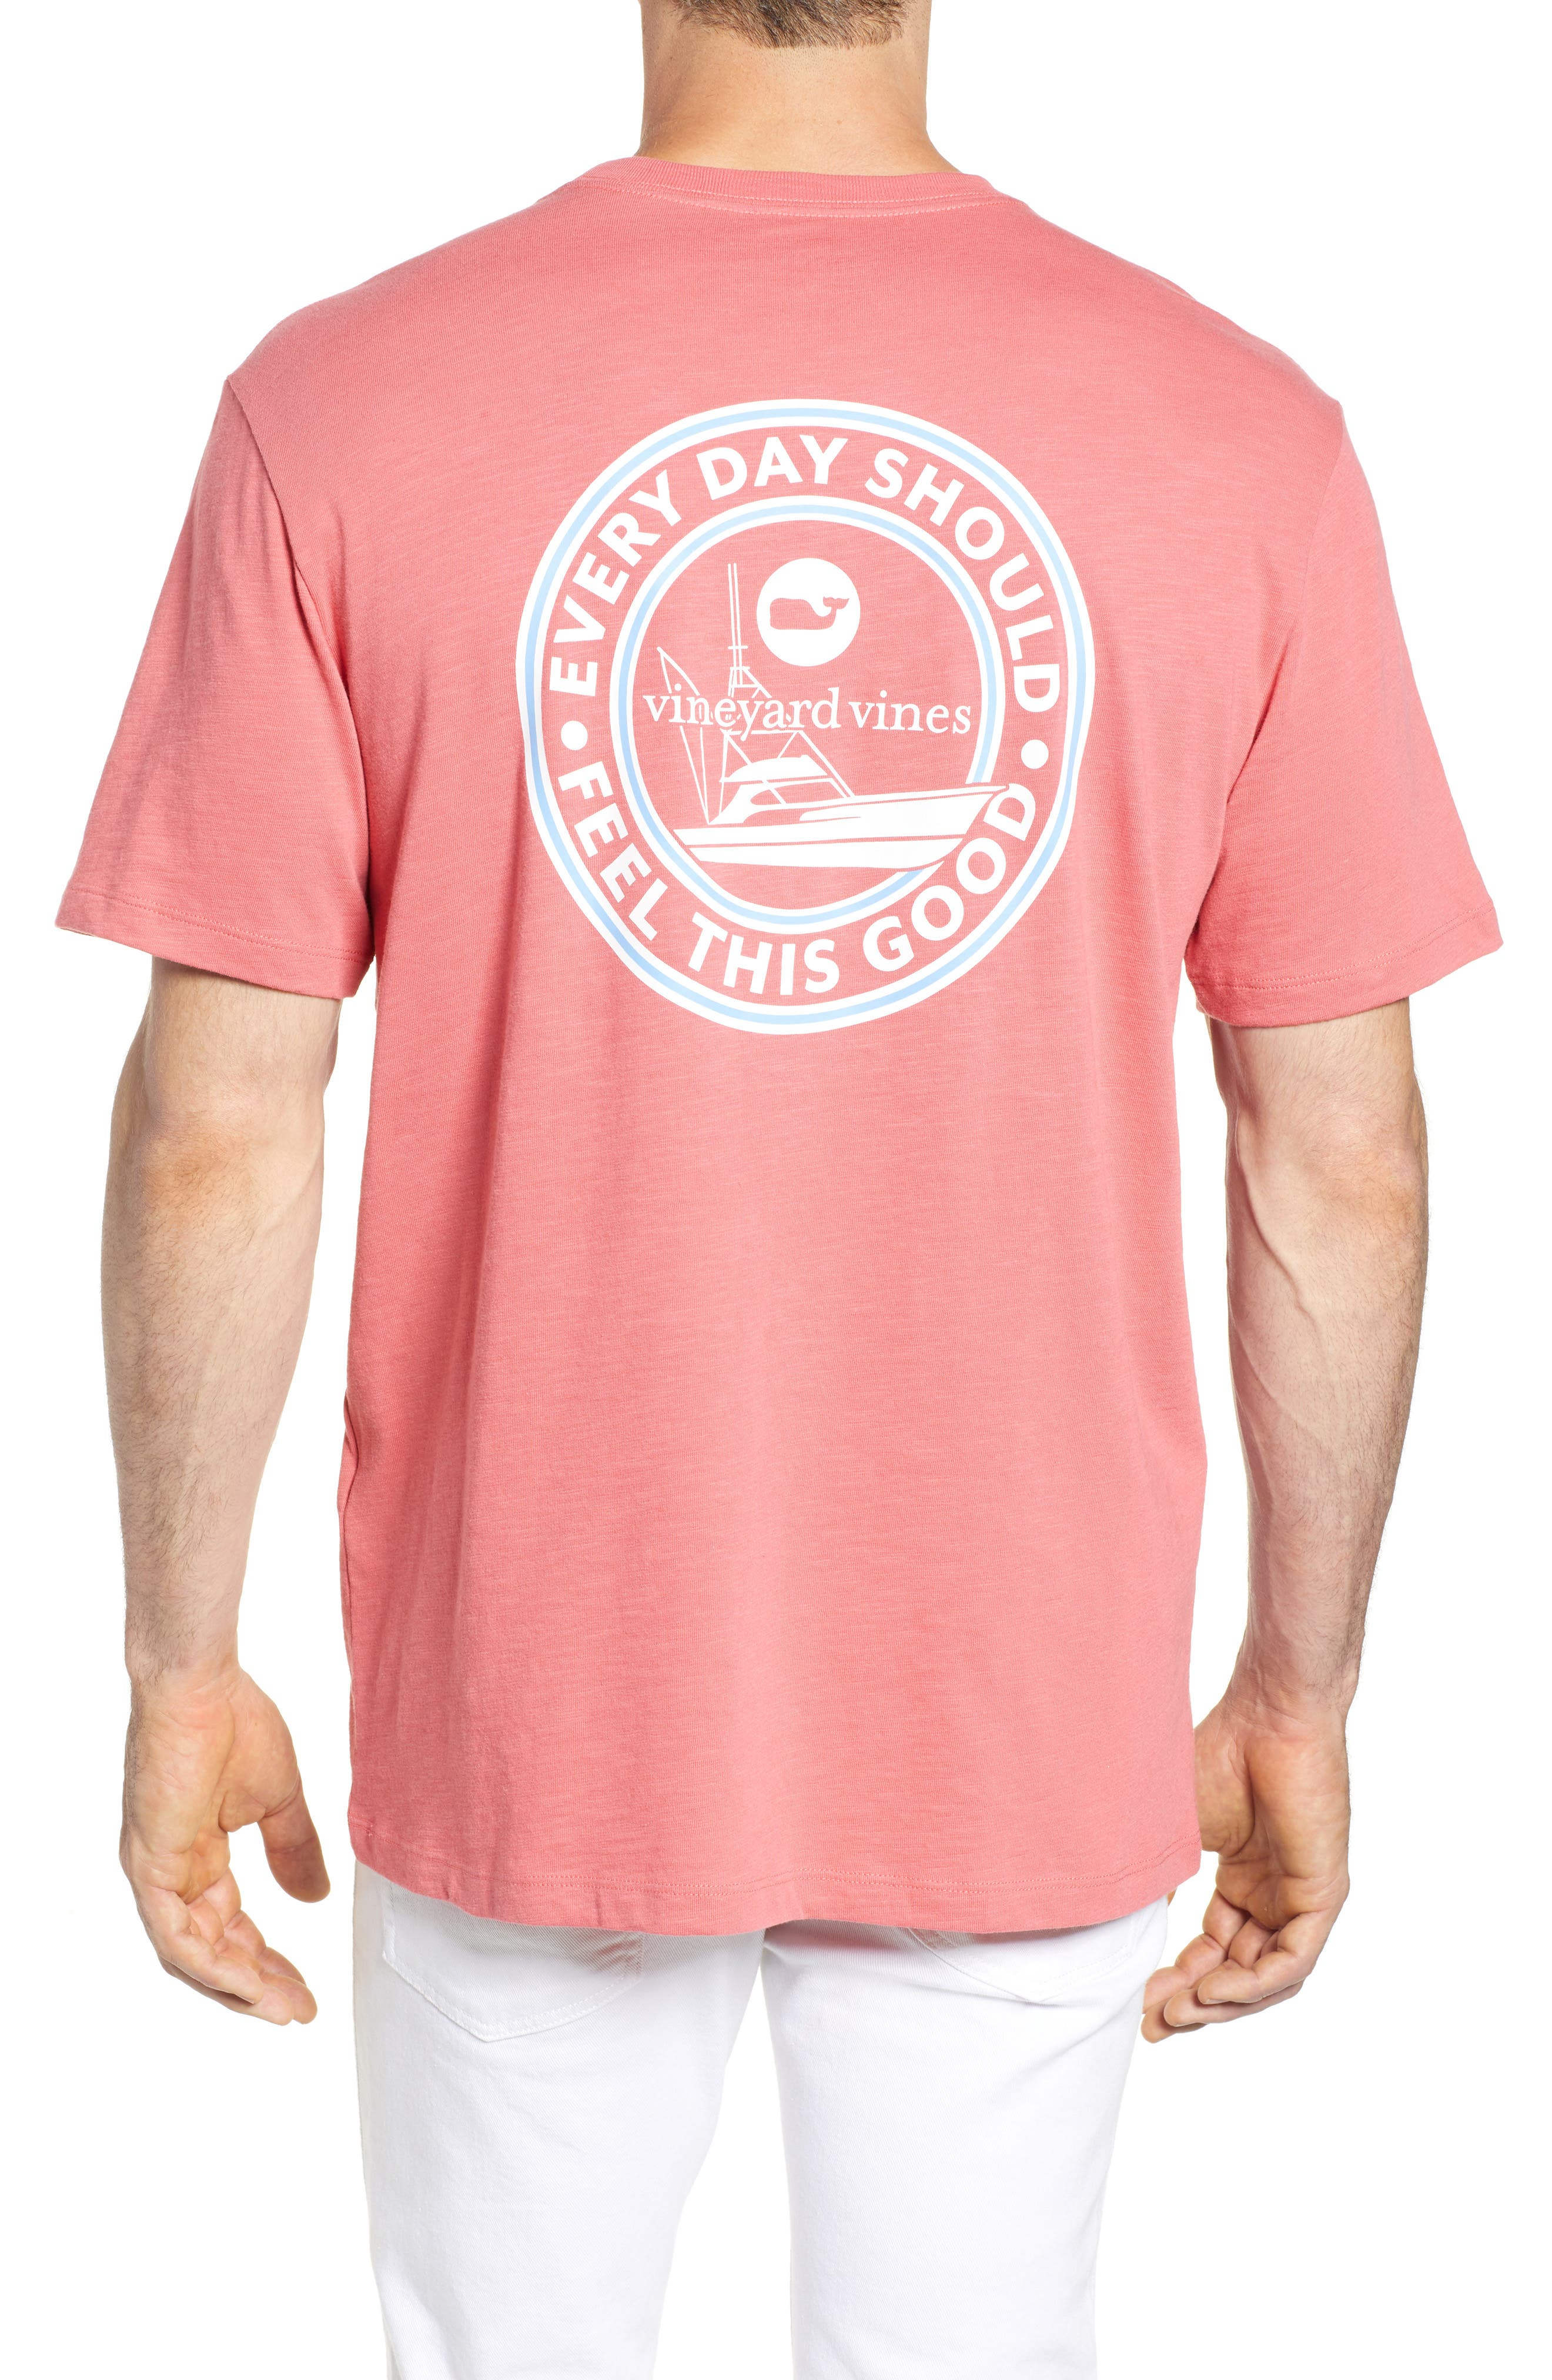 Every Day Should Feel This Good Pocket T-Shirt,                             Alternate thumbnail 2, color,                             Jetty Red